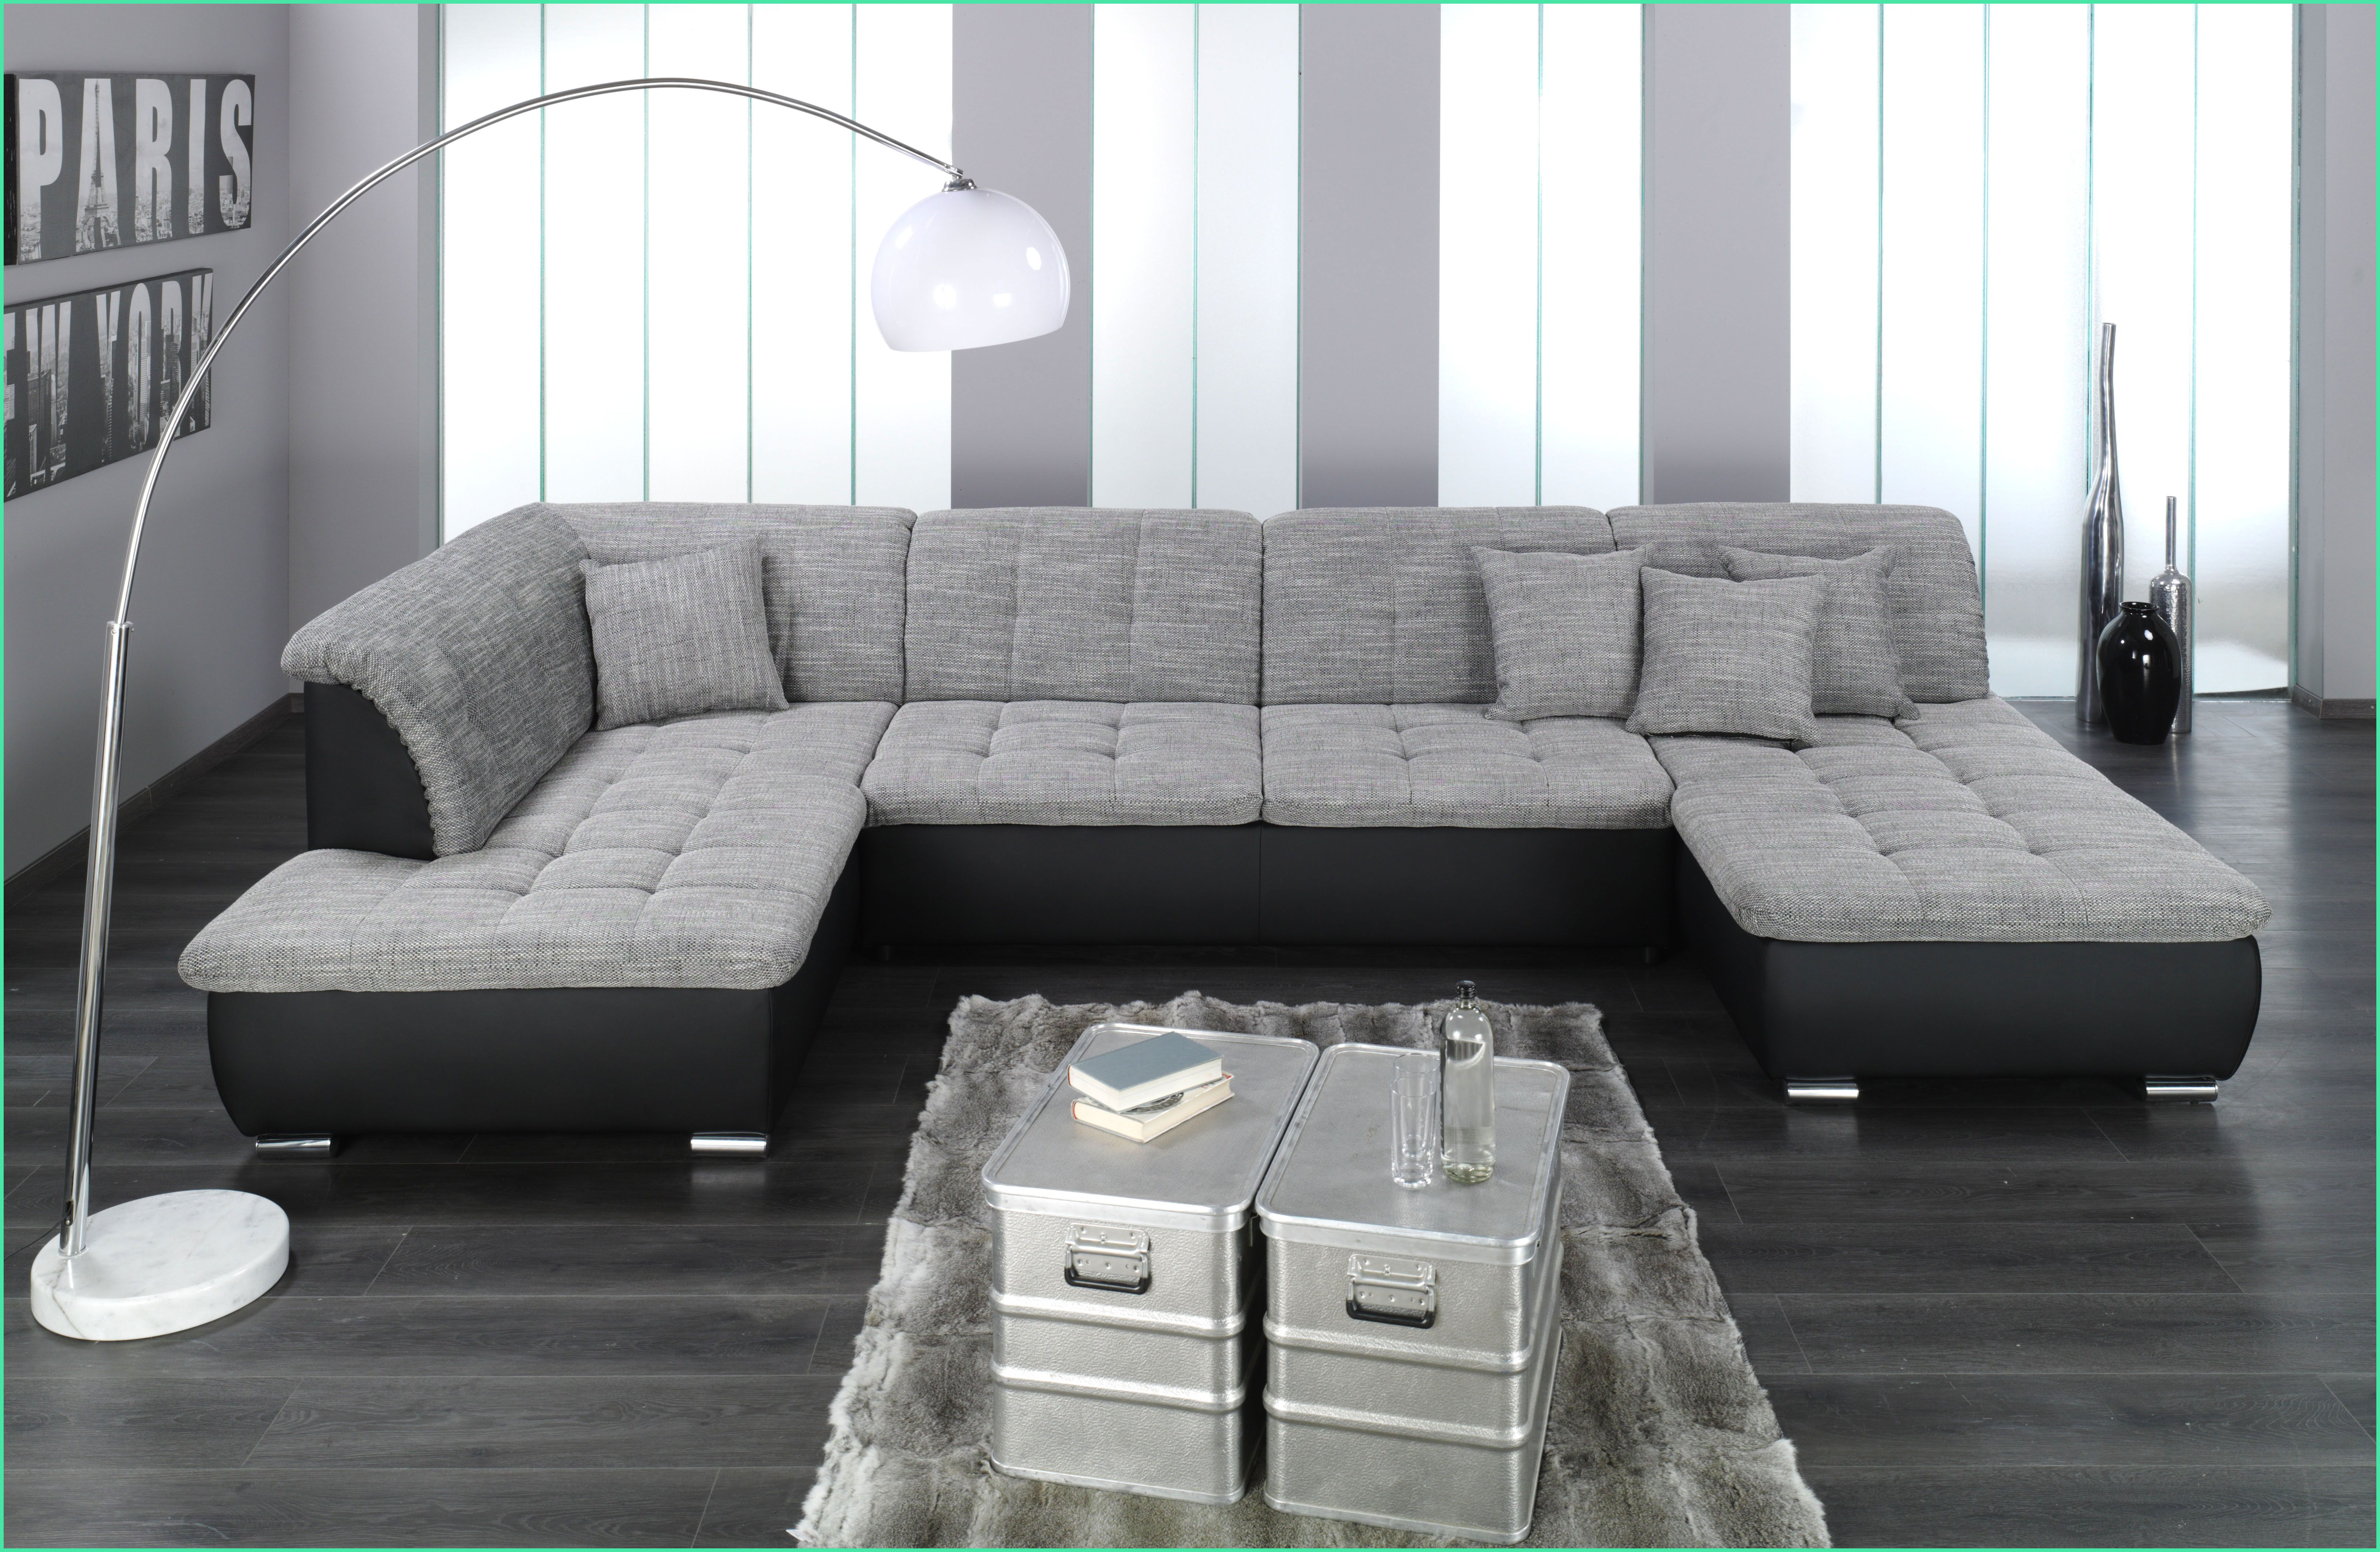 16 Anstandig Wohnlandschaft U Form Xxl Grey Sectional Sofa Sectional Sofa With Chaise Modern Couch